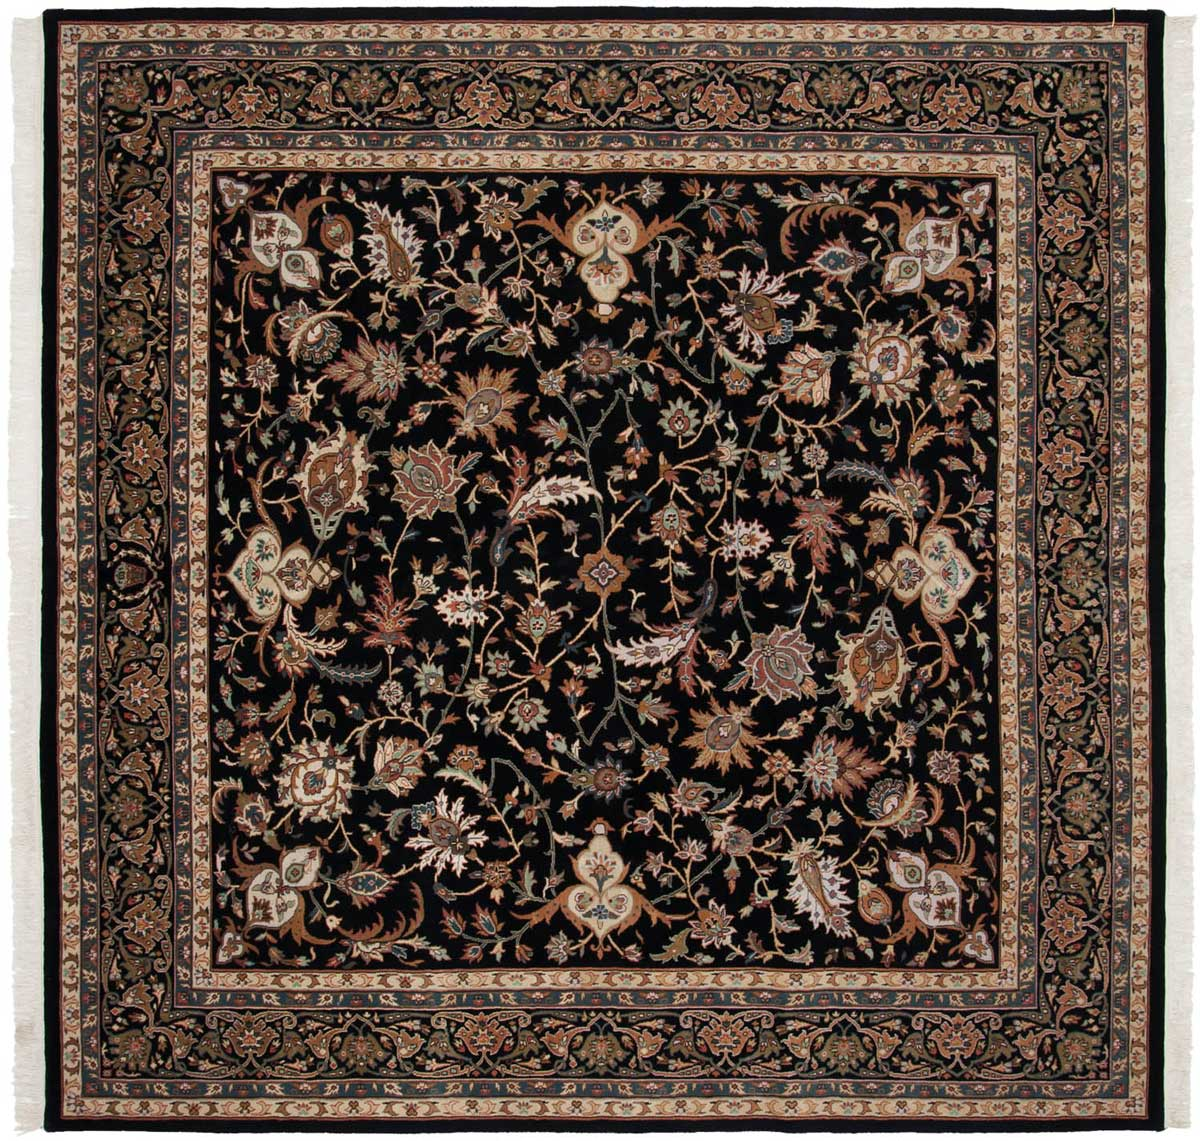 8 8 isfahan black oriental square rug 039486 carpets by dilmaghani